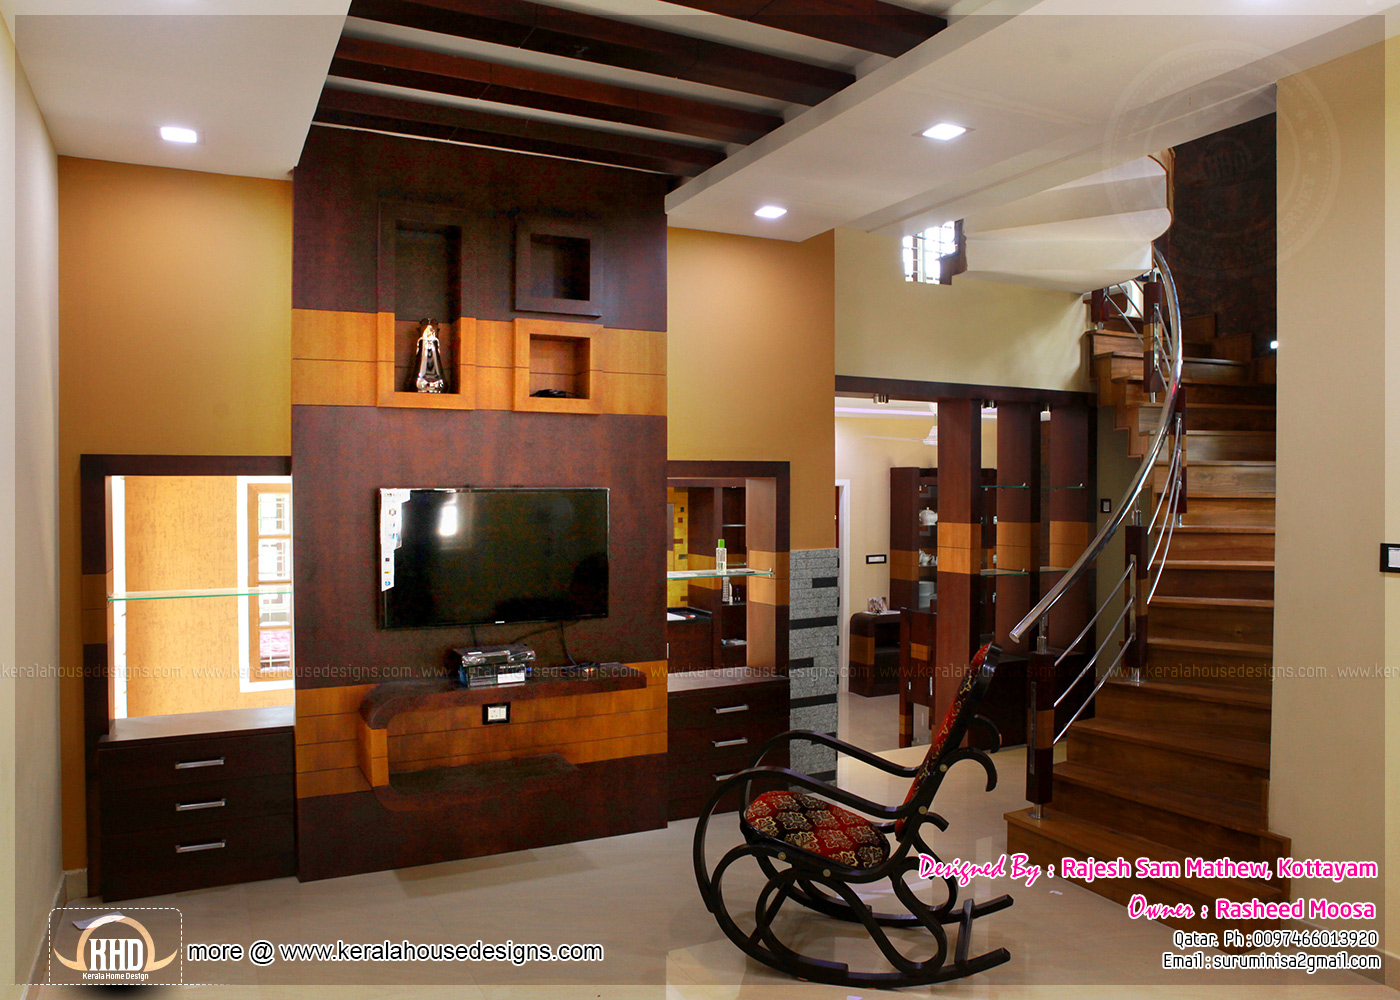 Kerala interior design with photos kerala home design for Kerala interior designs